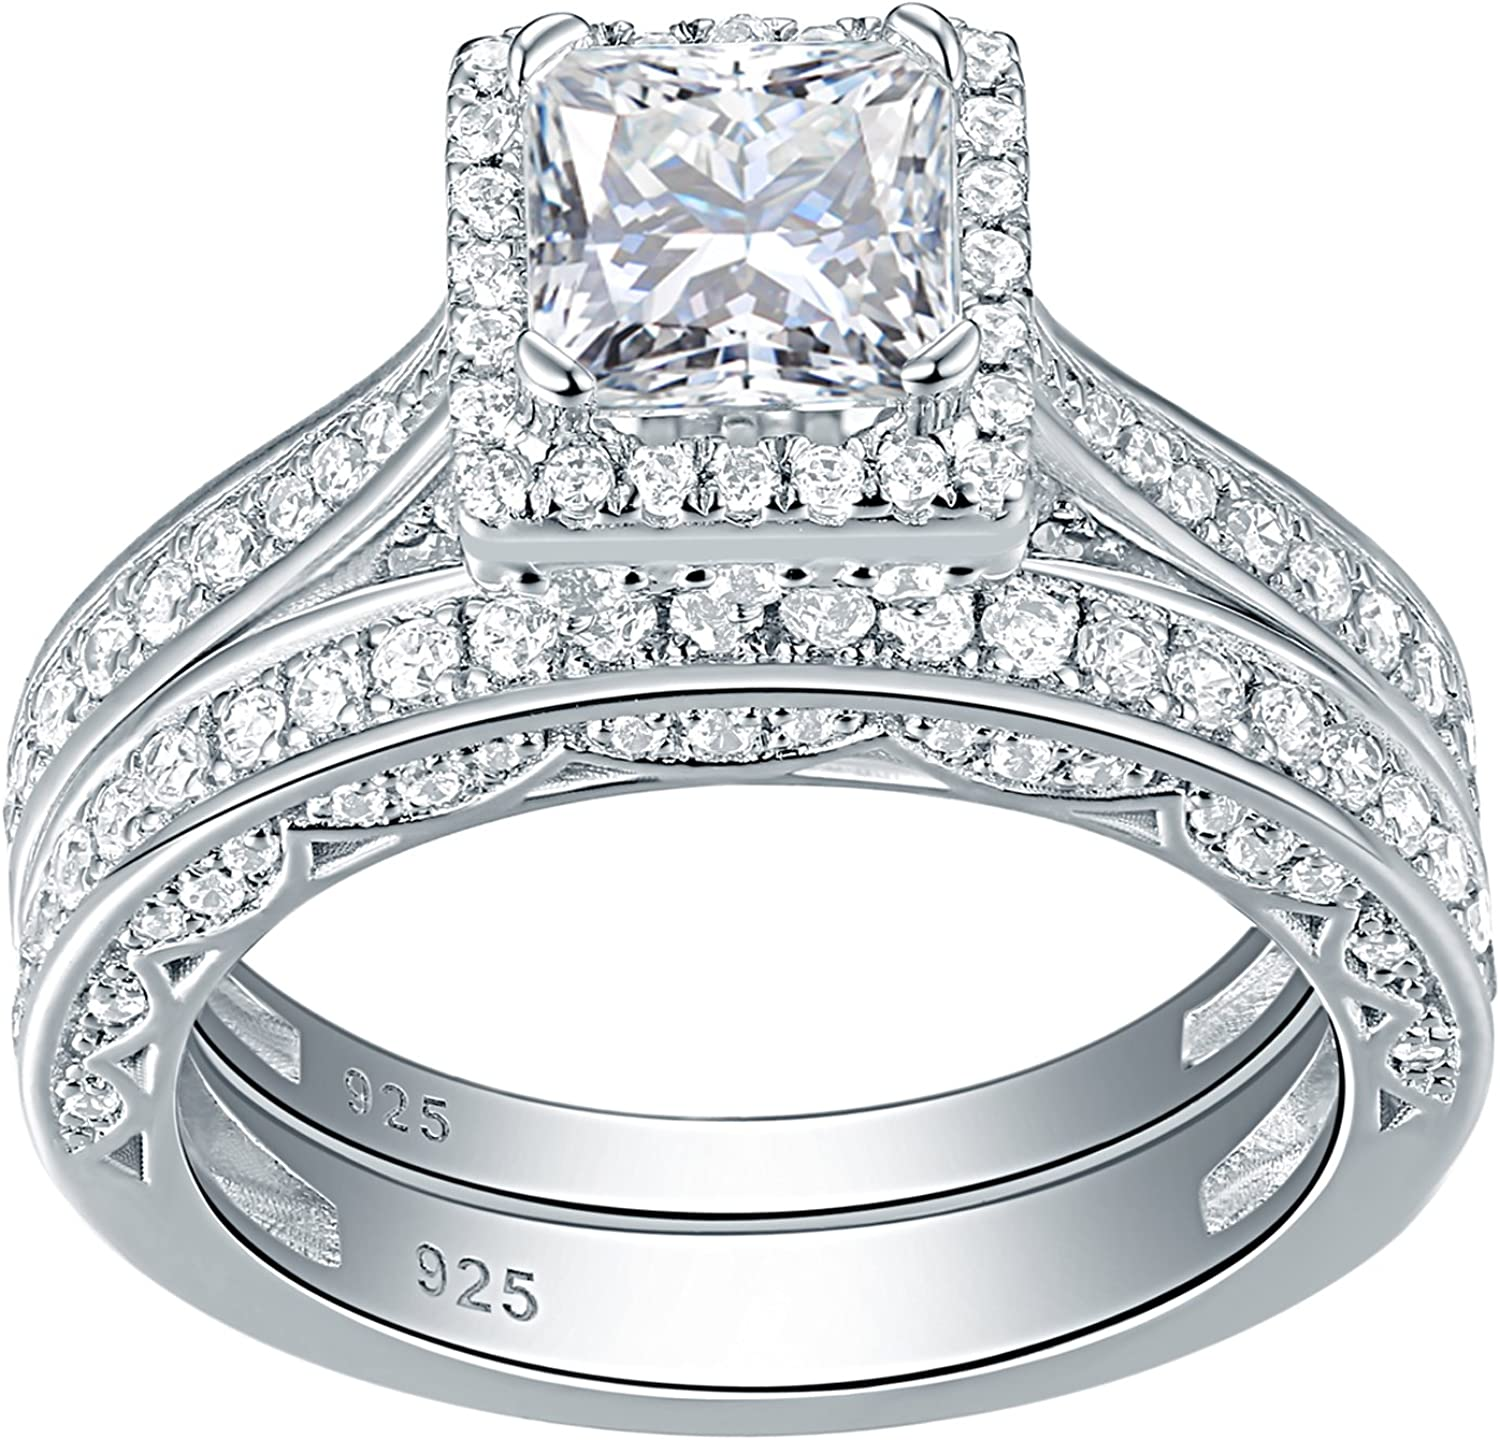 Amazon Com Newshe Engagement Wedding Ring Set For Women 925 Sterling Silver 1 5ct Princess White Aaa Cz Sz 5 12 Jewelry